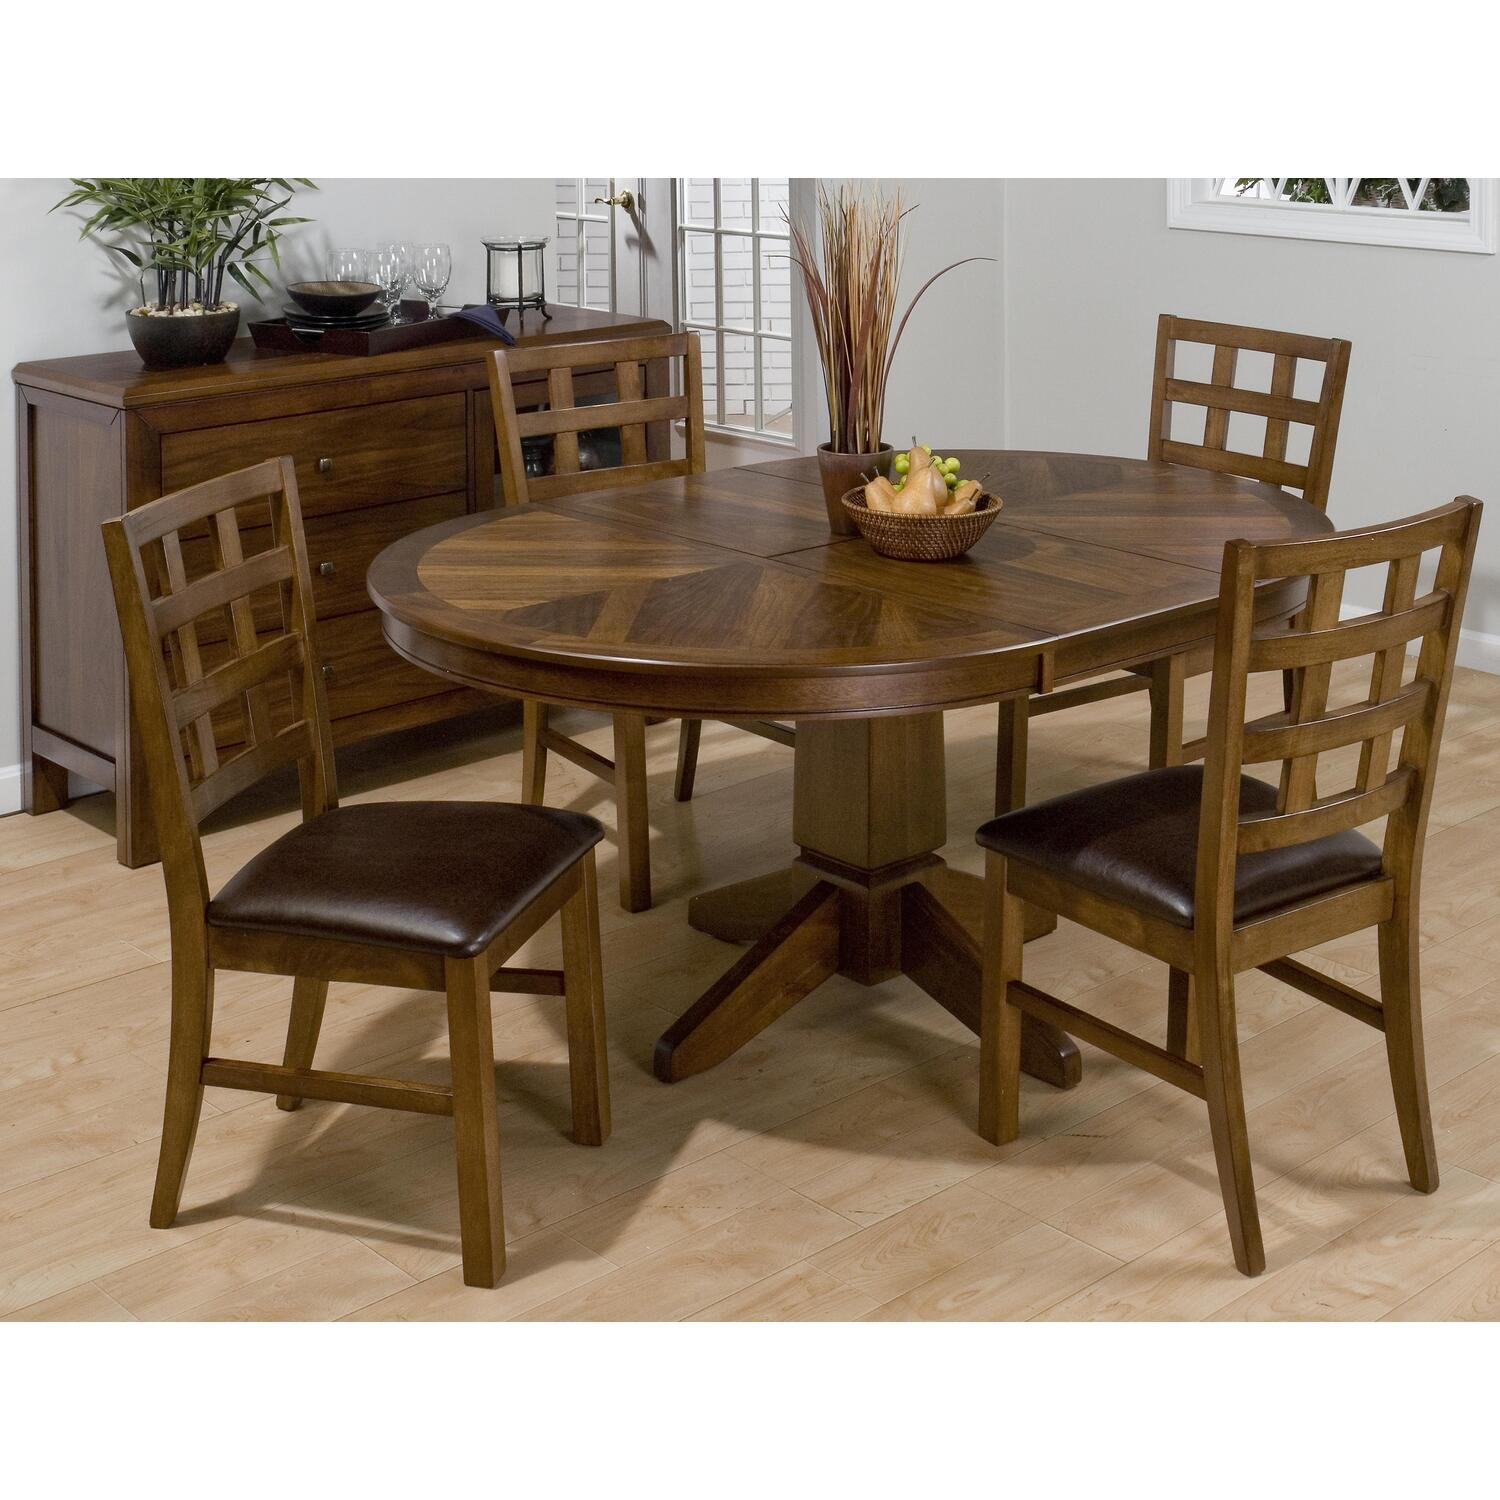 falls walnut finished round 5 piece dining set w butterfly leaf